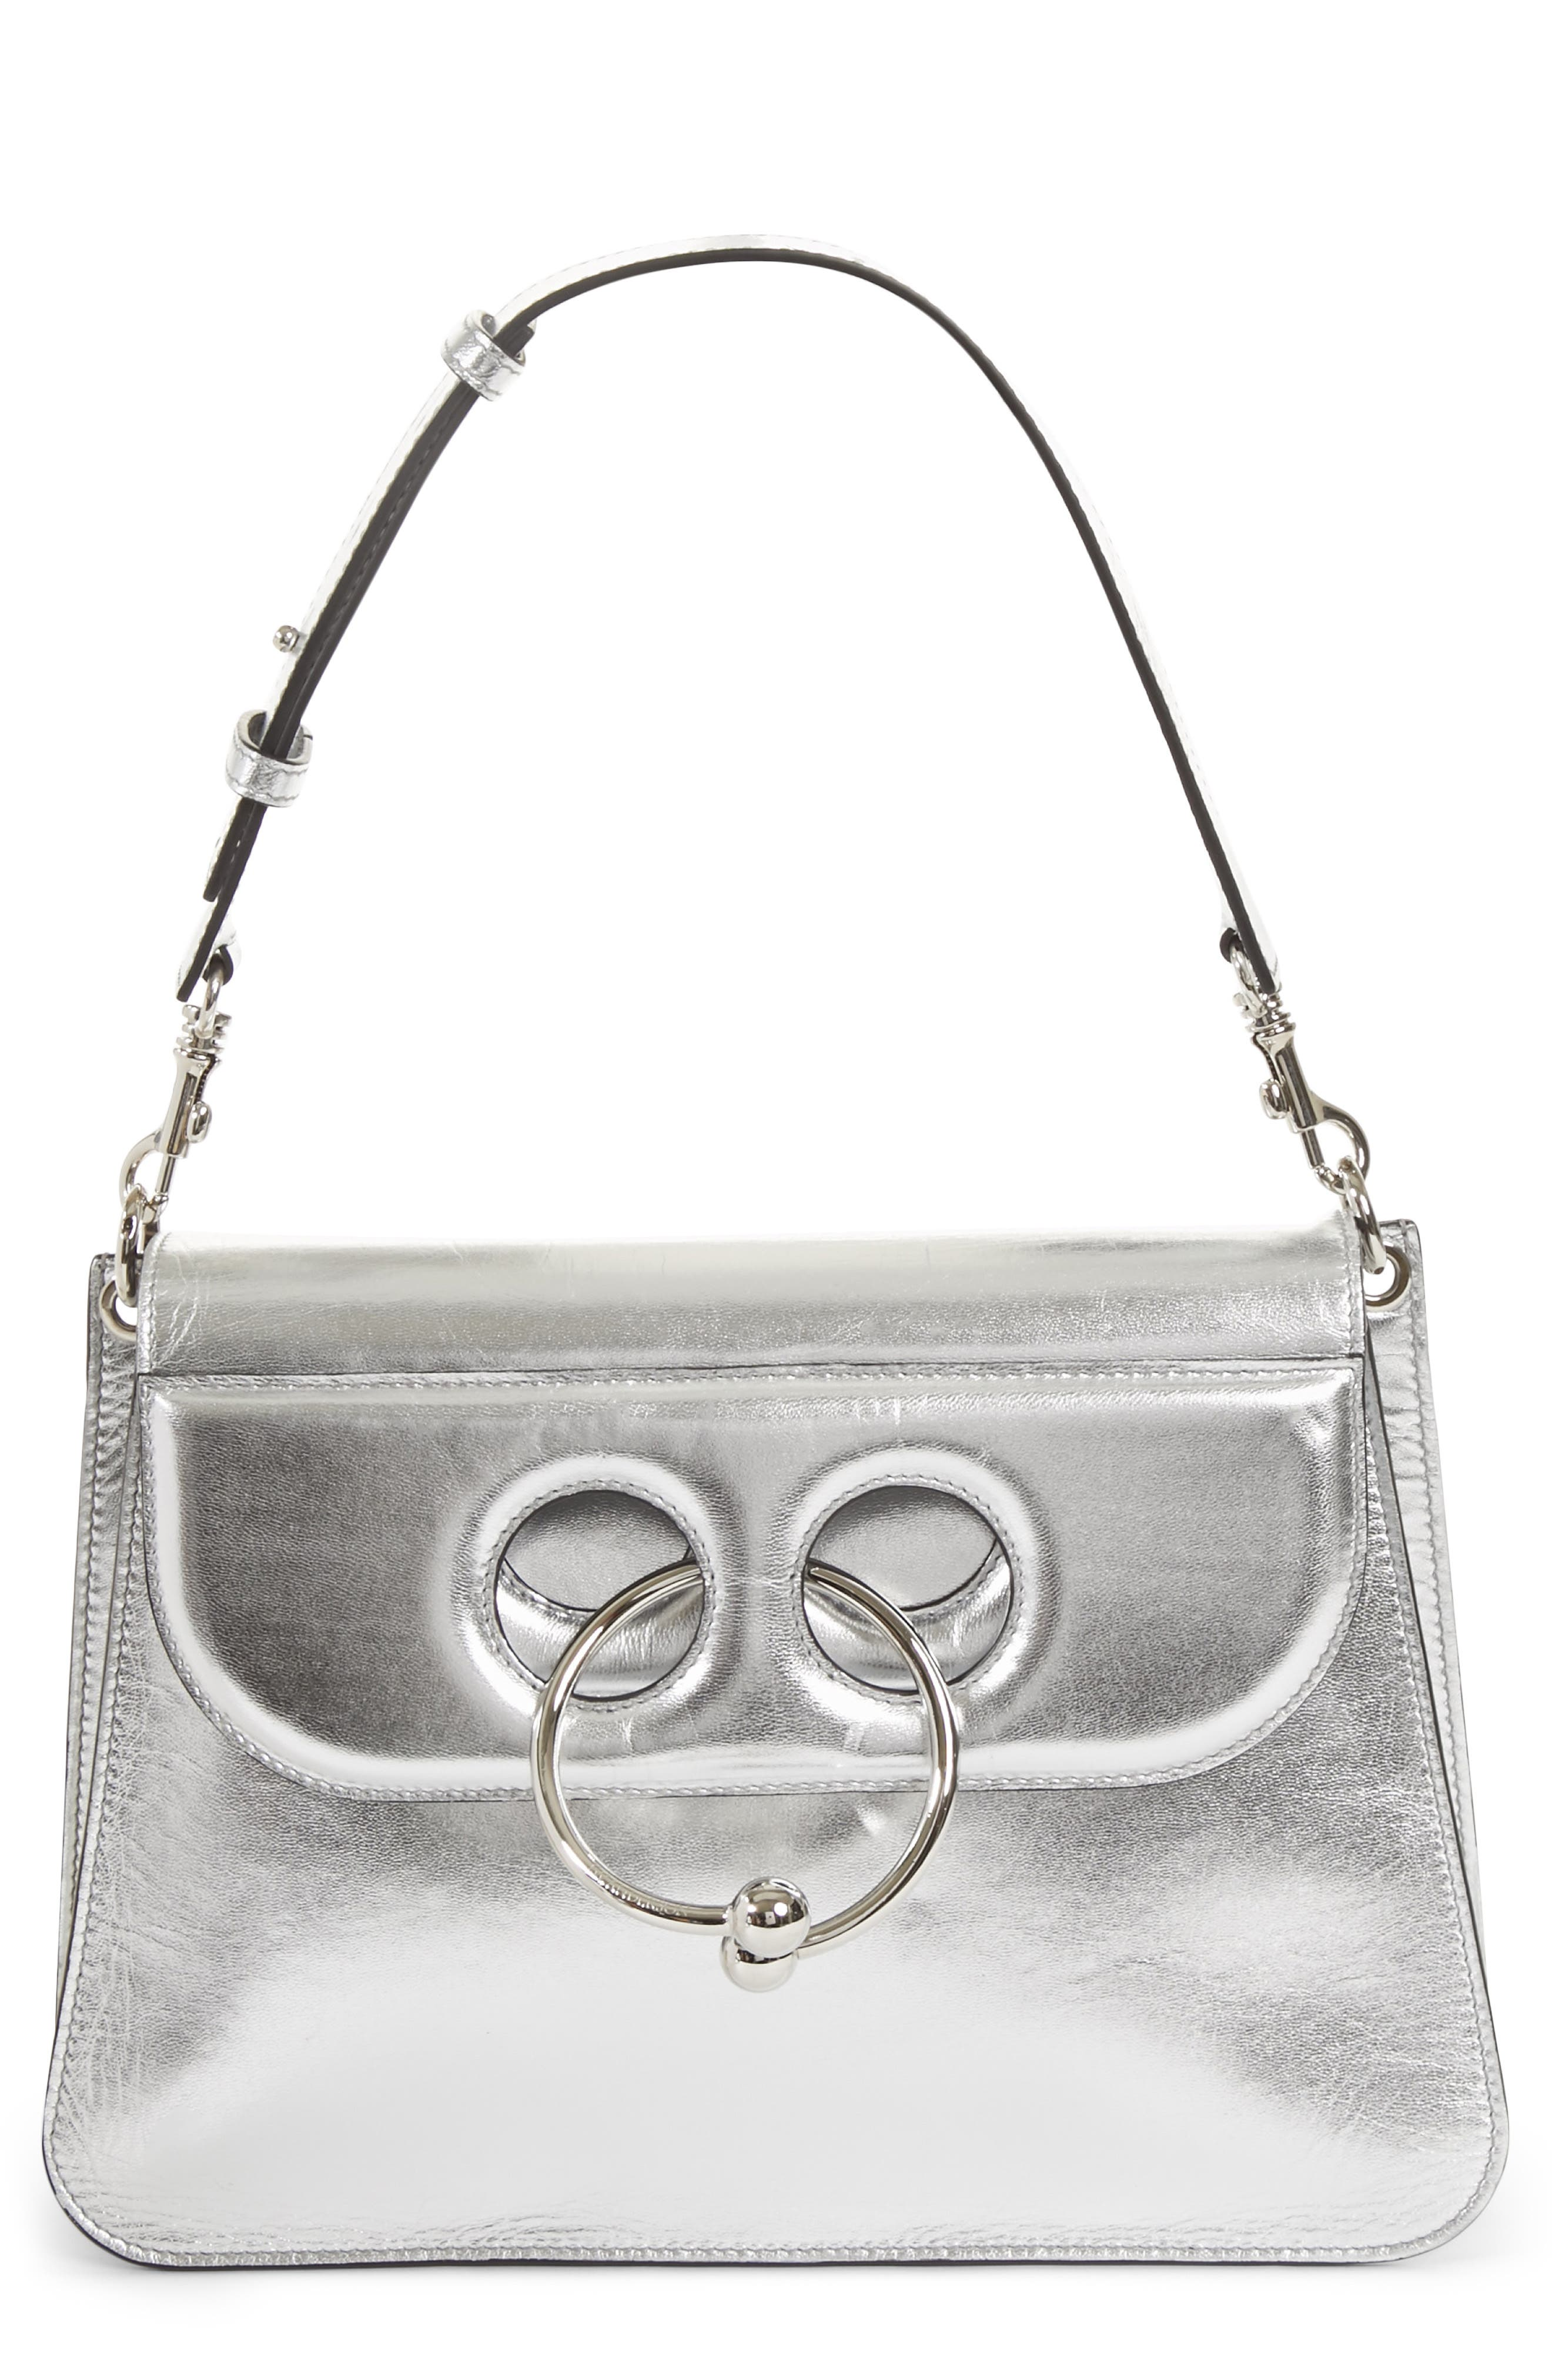 Main Image - J.W.ANDERSON Medium Pierce Metallic Shoulder Bag